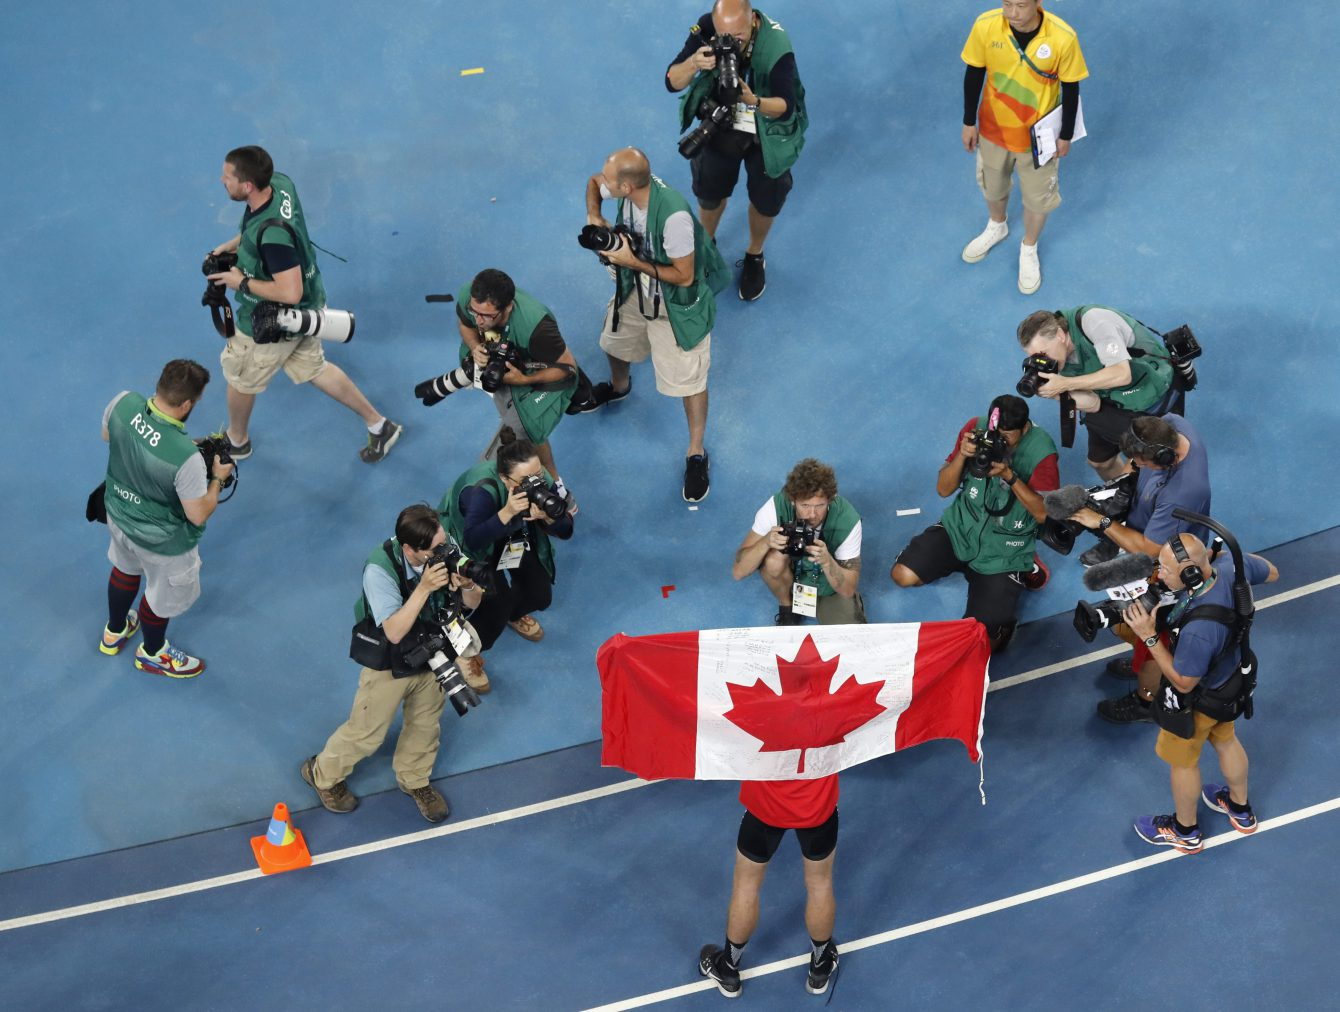 Canada's Derek Drouin poses for pictures after winning the gold medal in the high jump finals during the athletics competitions of the 2016 Summer Olympics at the Olympic stadium in Rio de Janeiro, Brazil, Tuesday, Aug. 16, 2016. (AP Photo/Morry Gash)